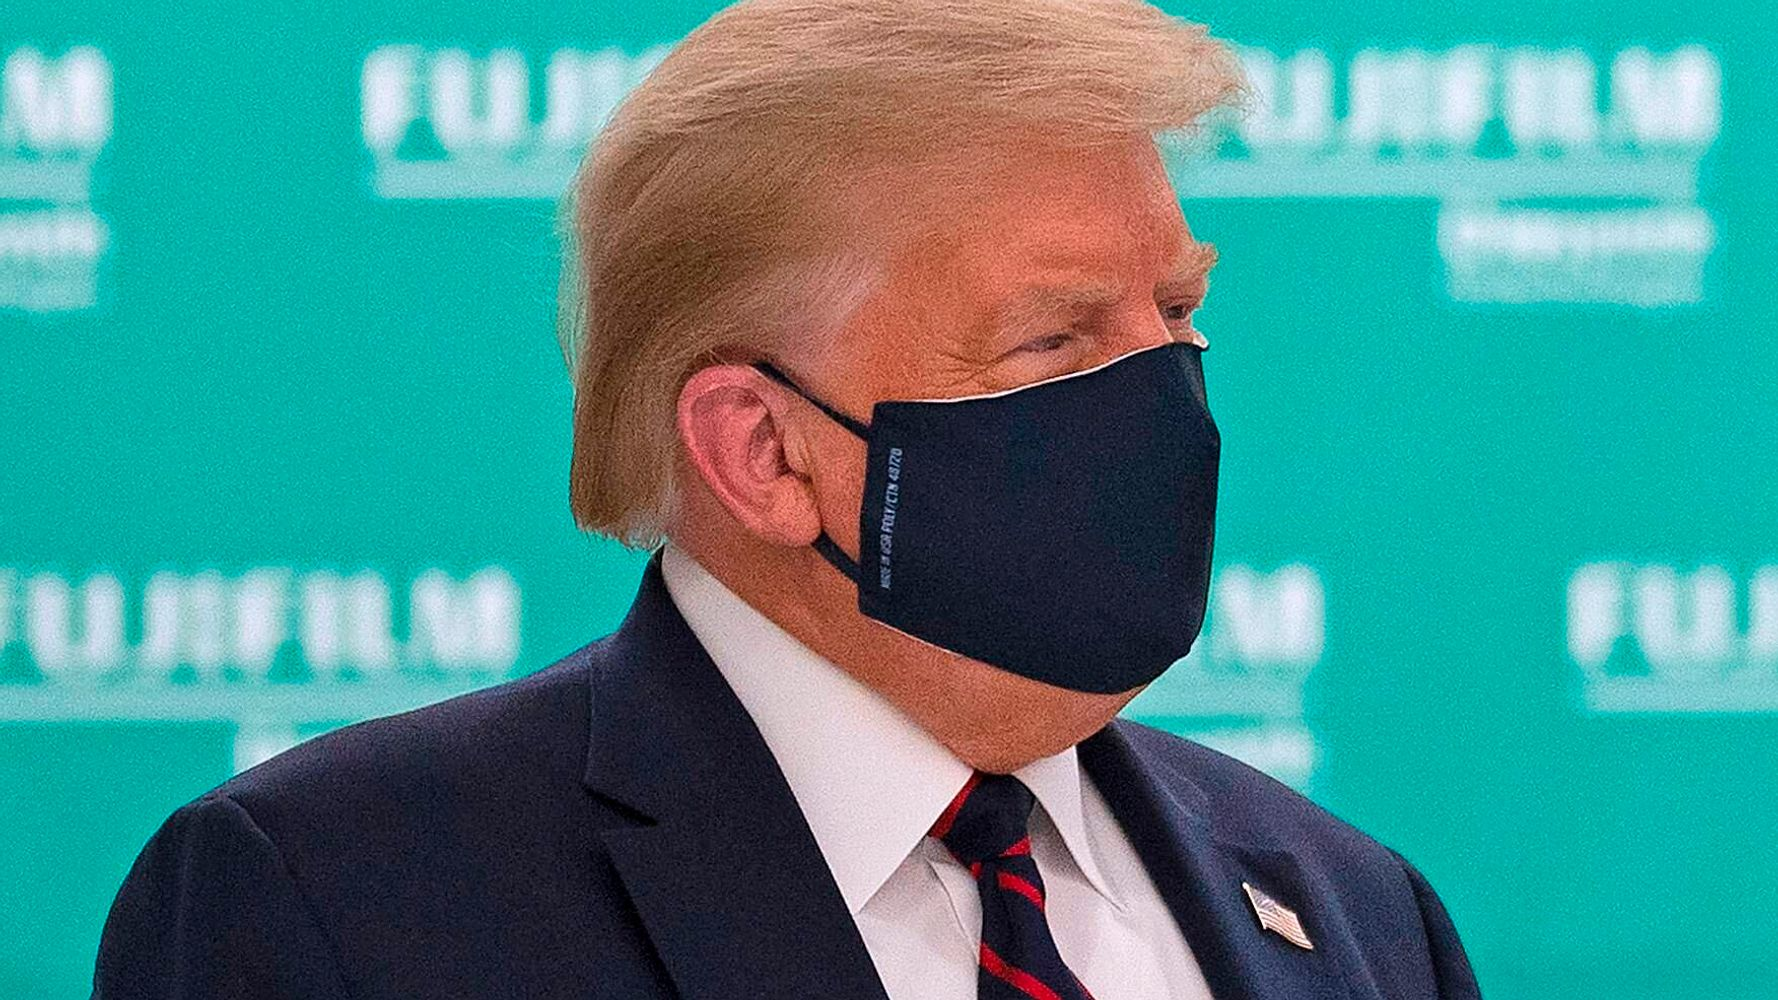 'The Daily Show' Reveals What Trump Says Behind His Coronavirus Face Mask 1